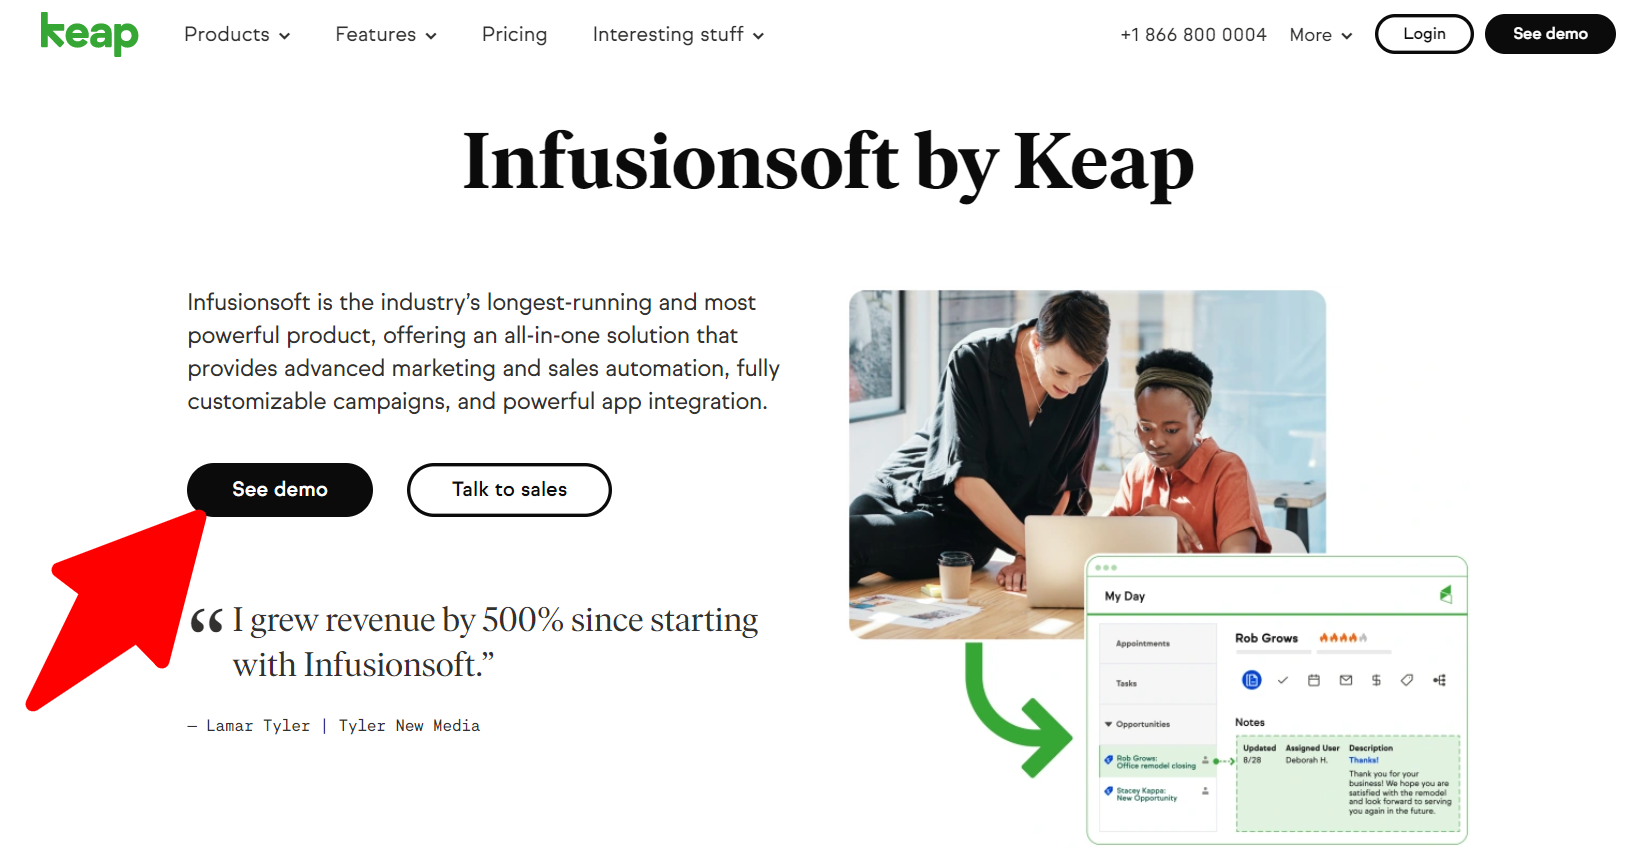 Infusionsoft Overview